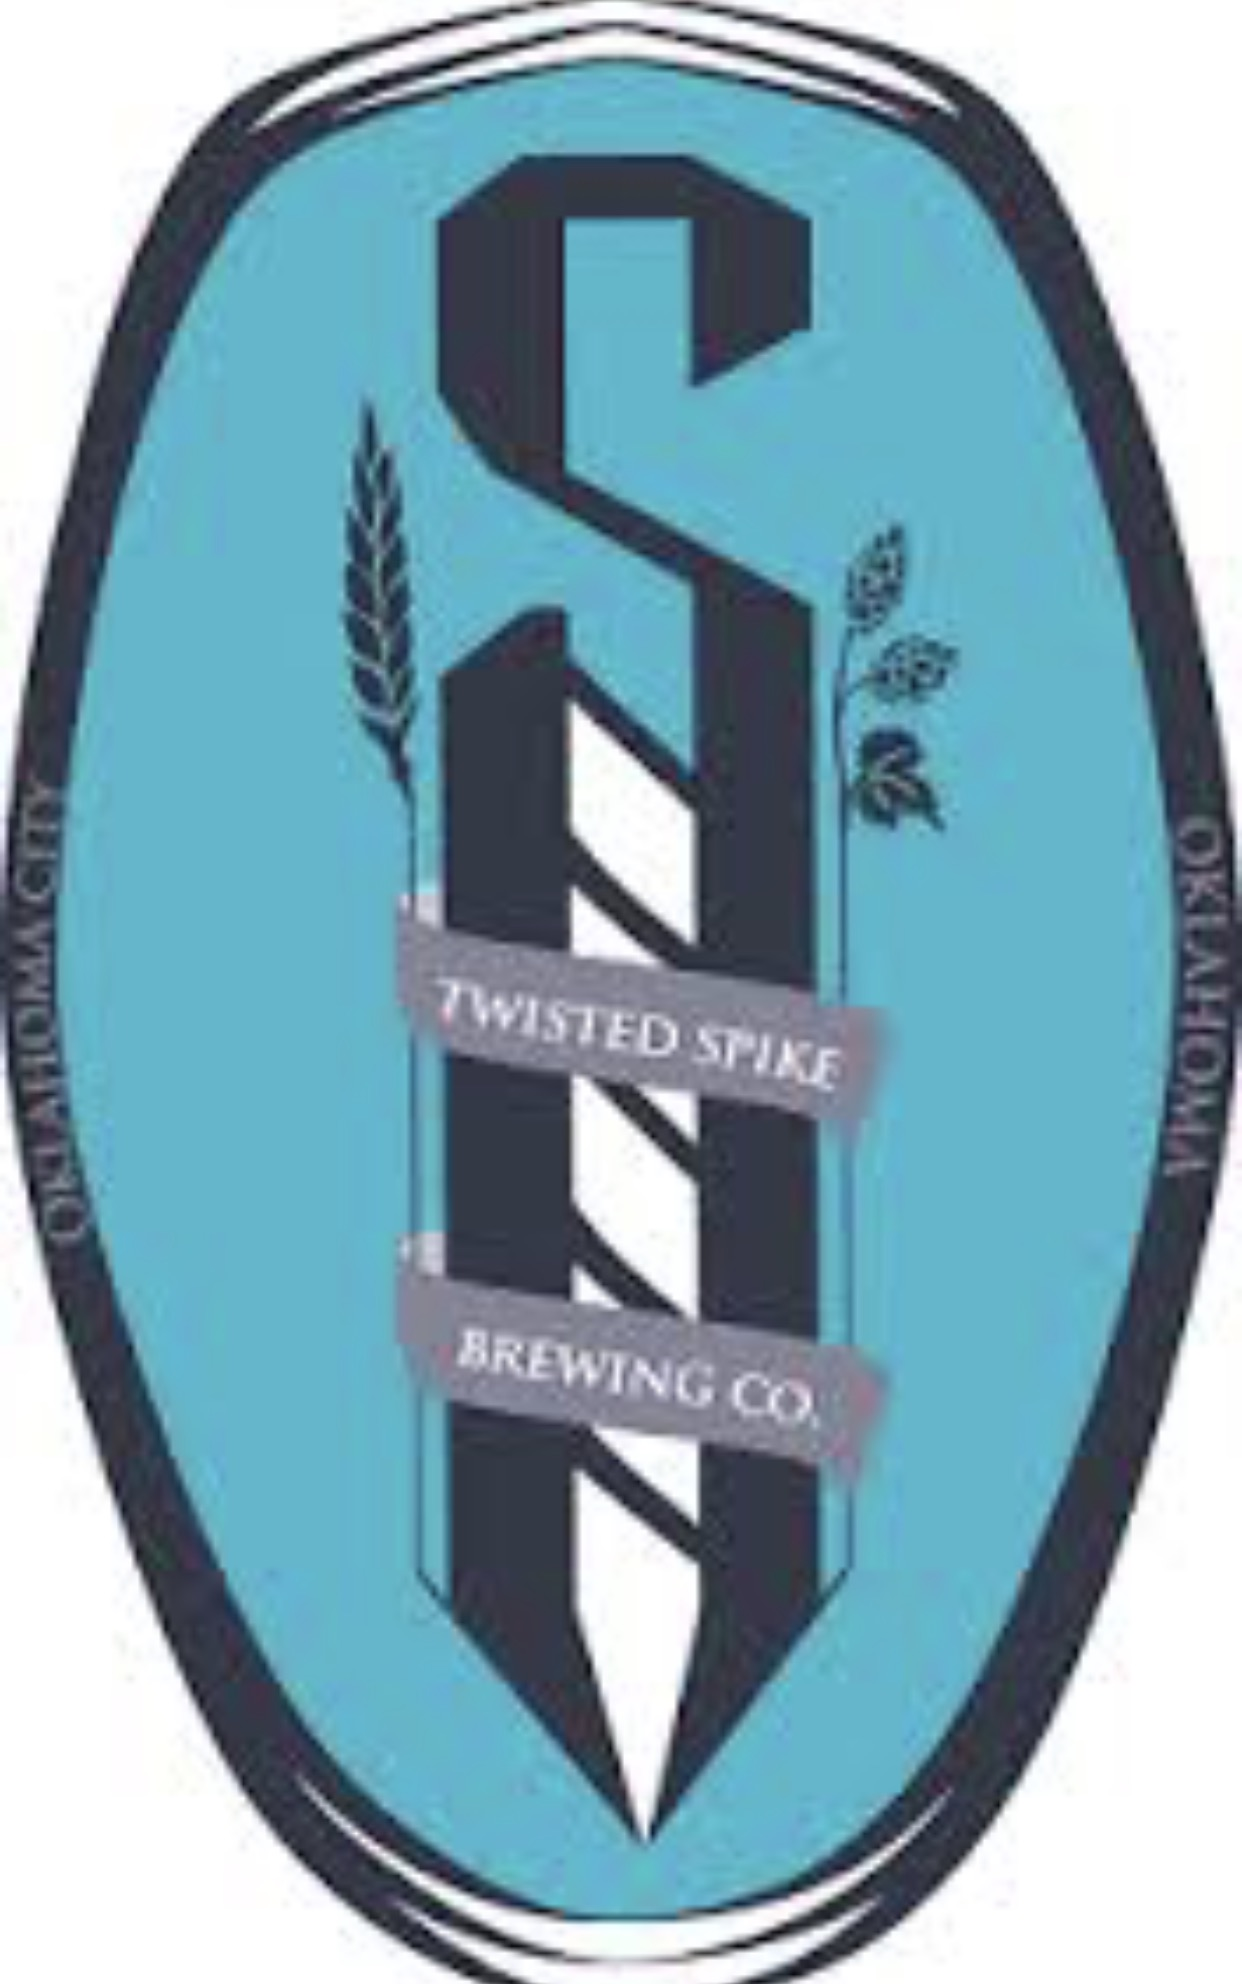 Twisted Spike brewing co..jpg